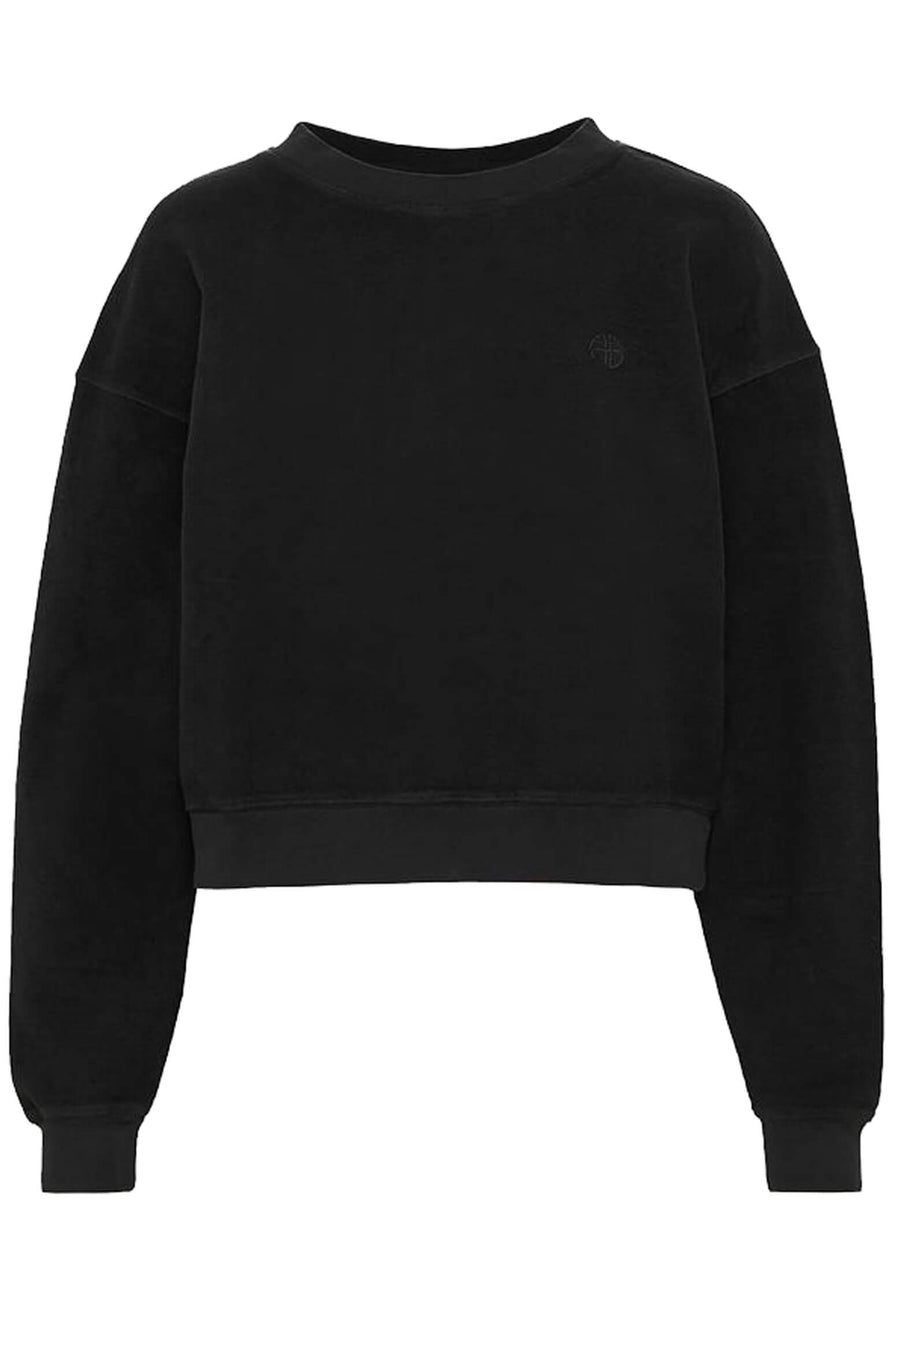 Anine Bing Reed Sweatshirt in Black from The New Trend